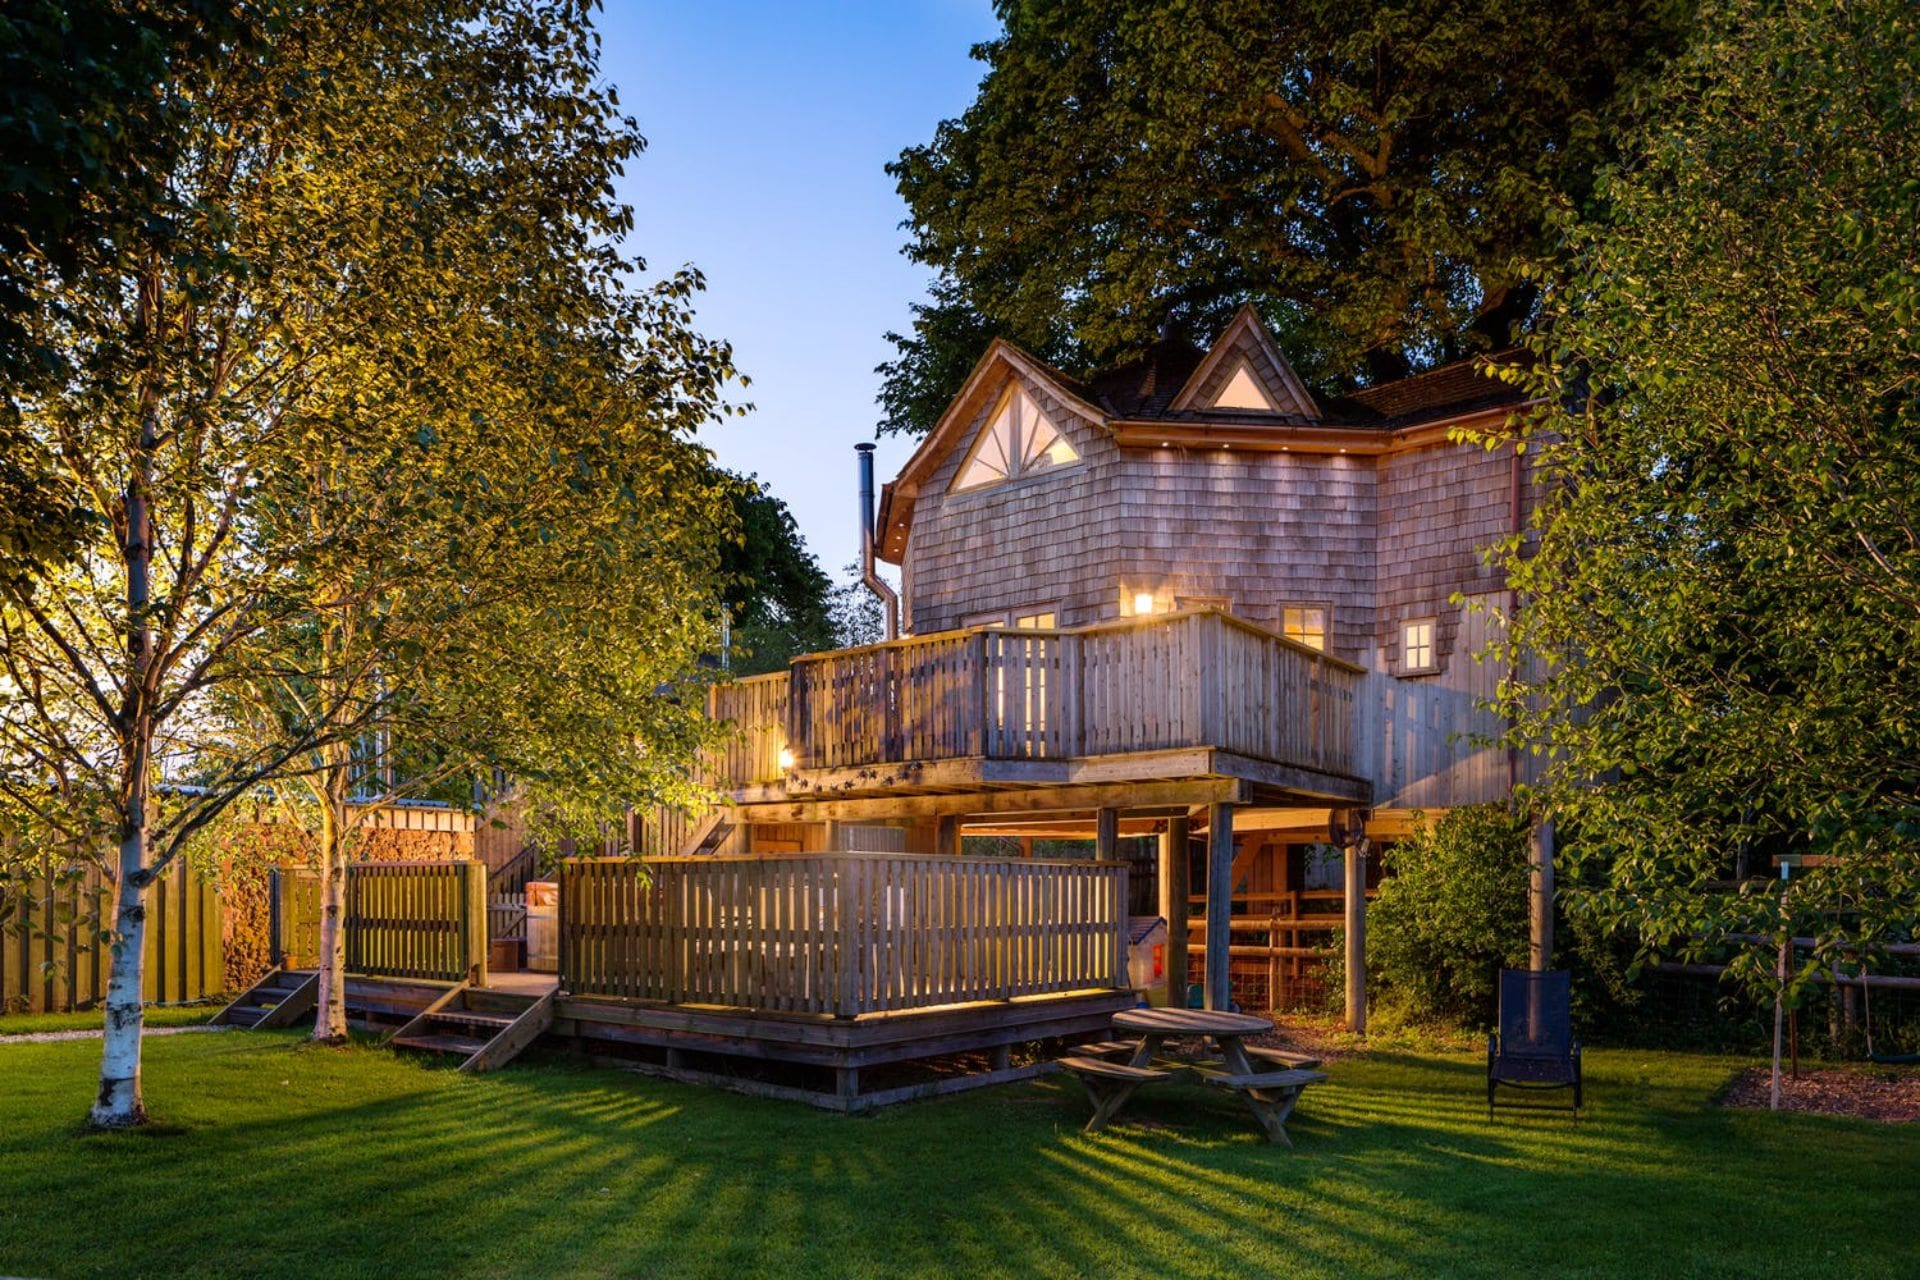 luxurious-treehouse-hotel-with-patio-in-garden-lit-up-at-night-lavender-hill-holidays-taunton-somerset-treehouse-holidays-uk-with-hot-tub